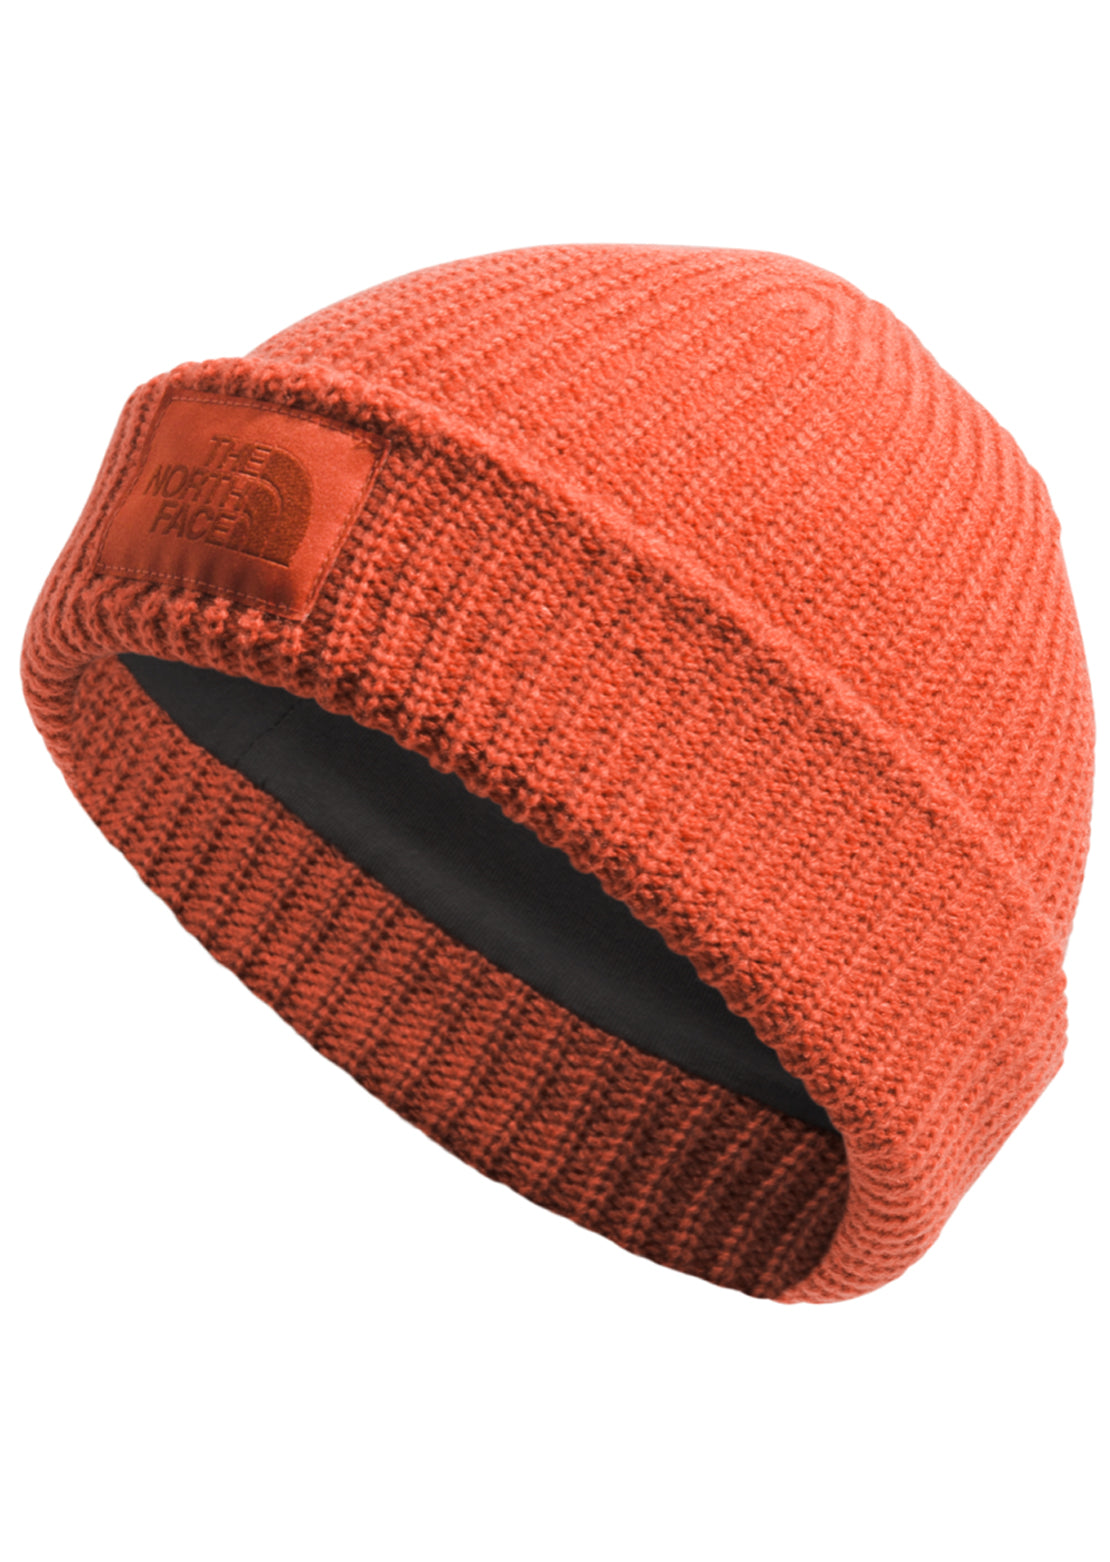 The North Face Salty Dog Beanie Burnt Ochre